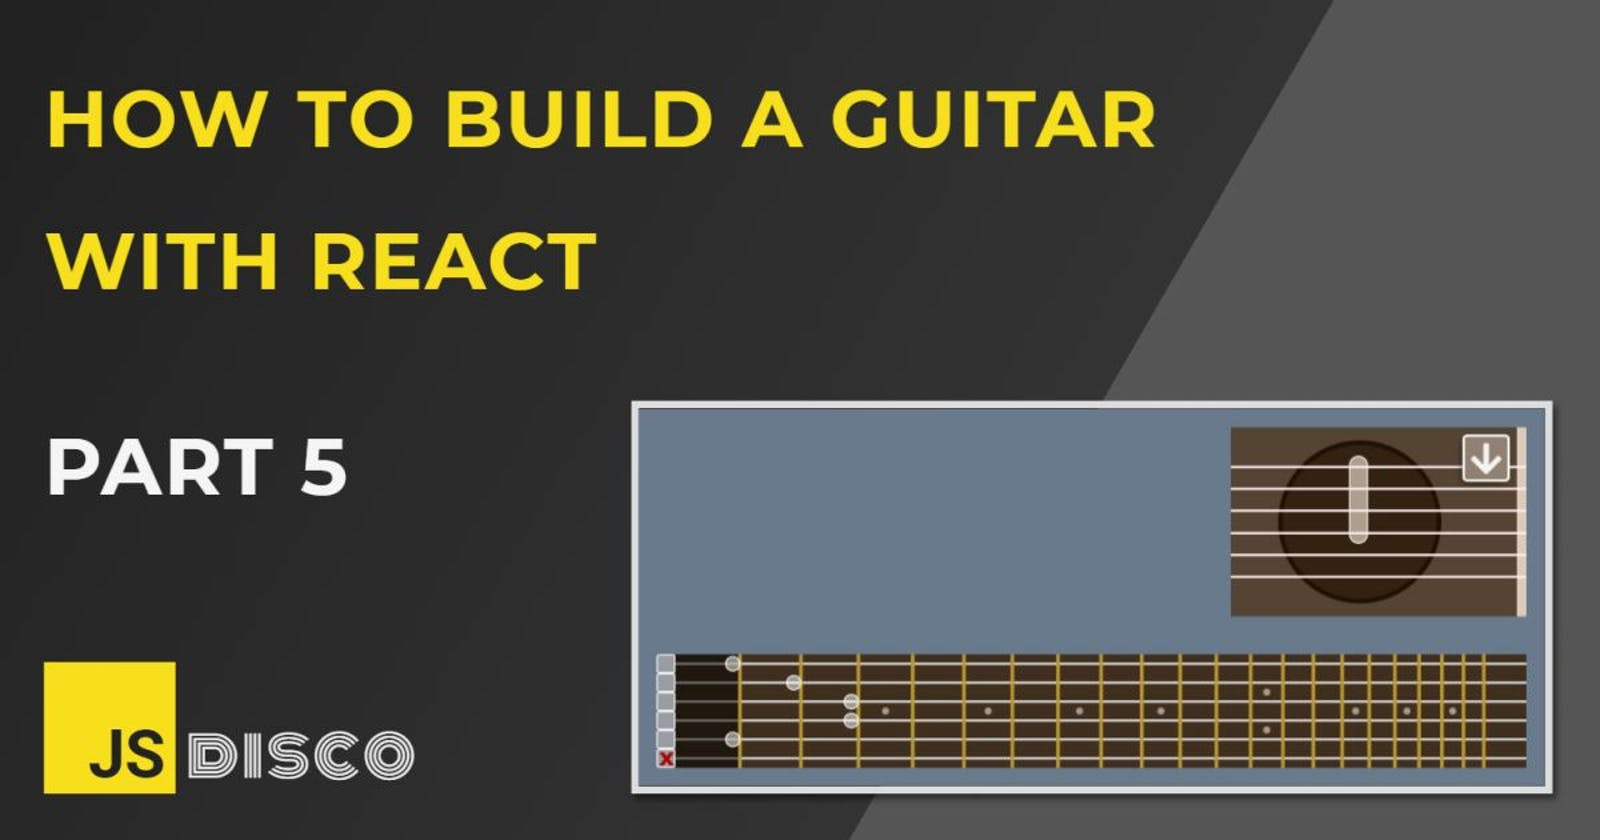 Build a Guitar with Reactjs (5): The Final Fretboard